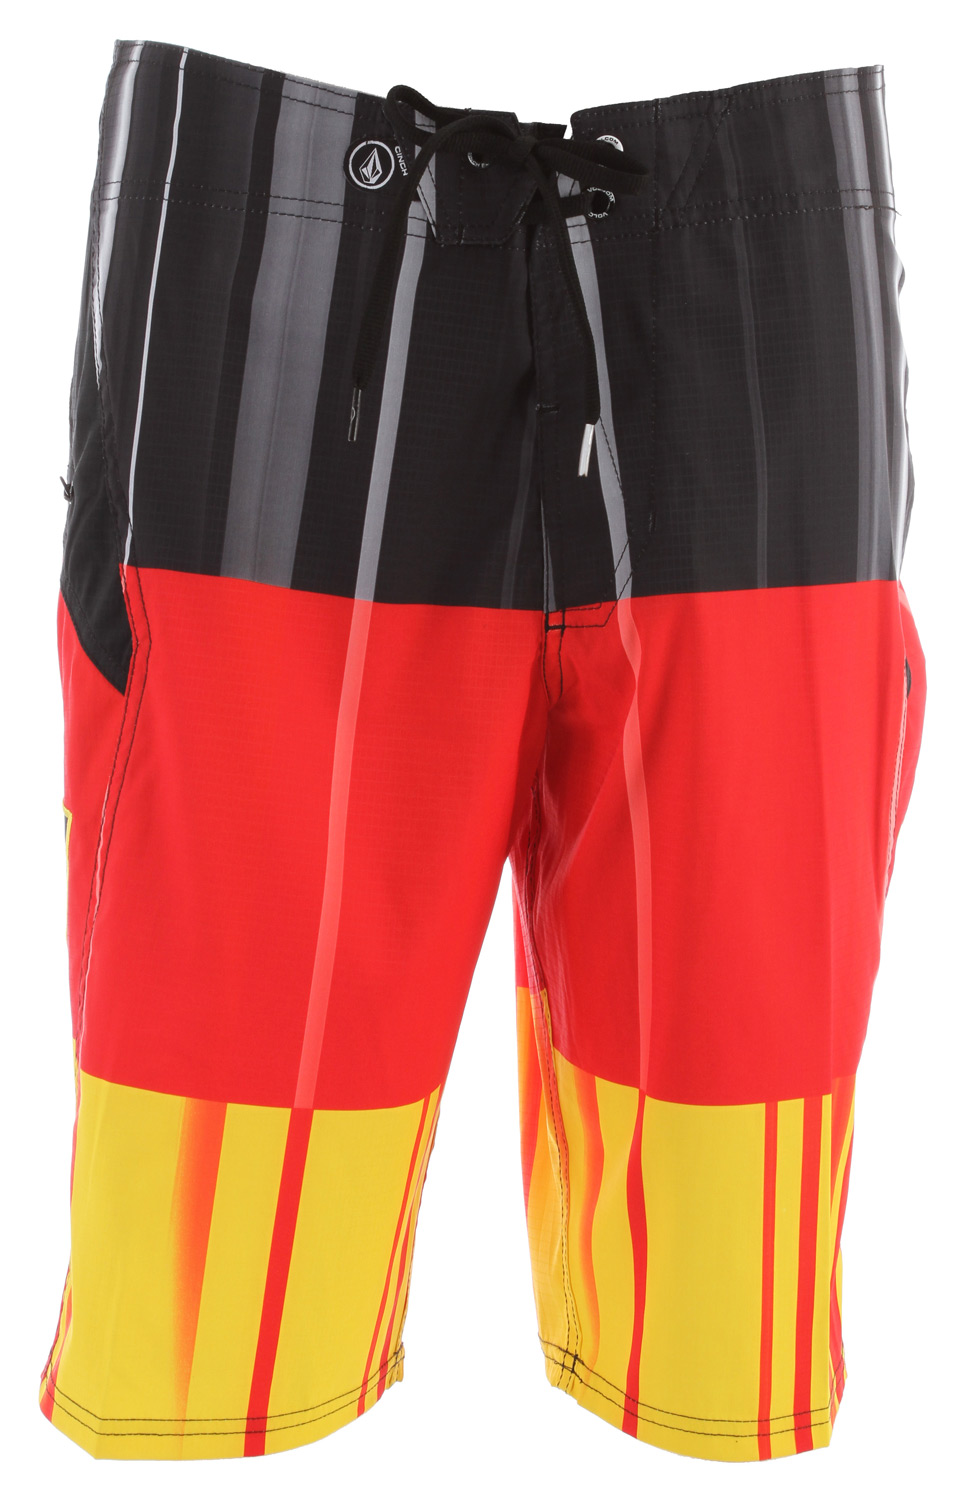 Surf Volcom Annihilator Stripe Boardshorts Drip Red - $44.95